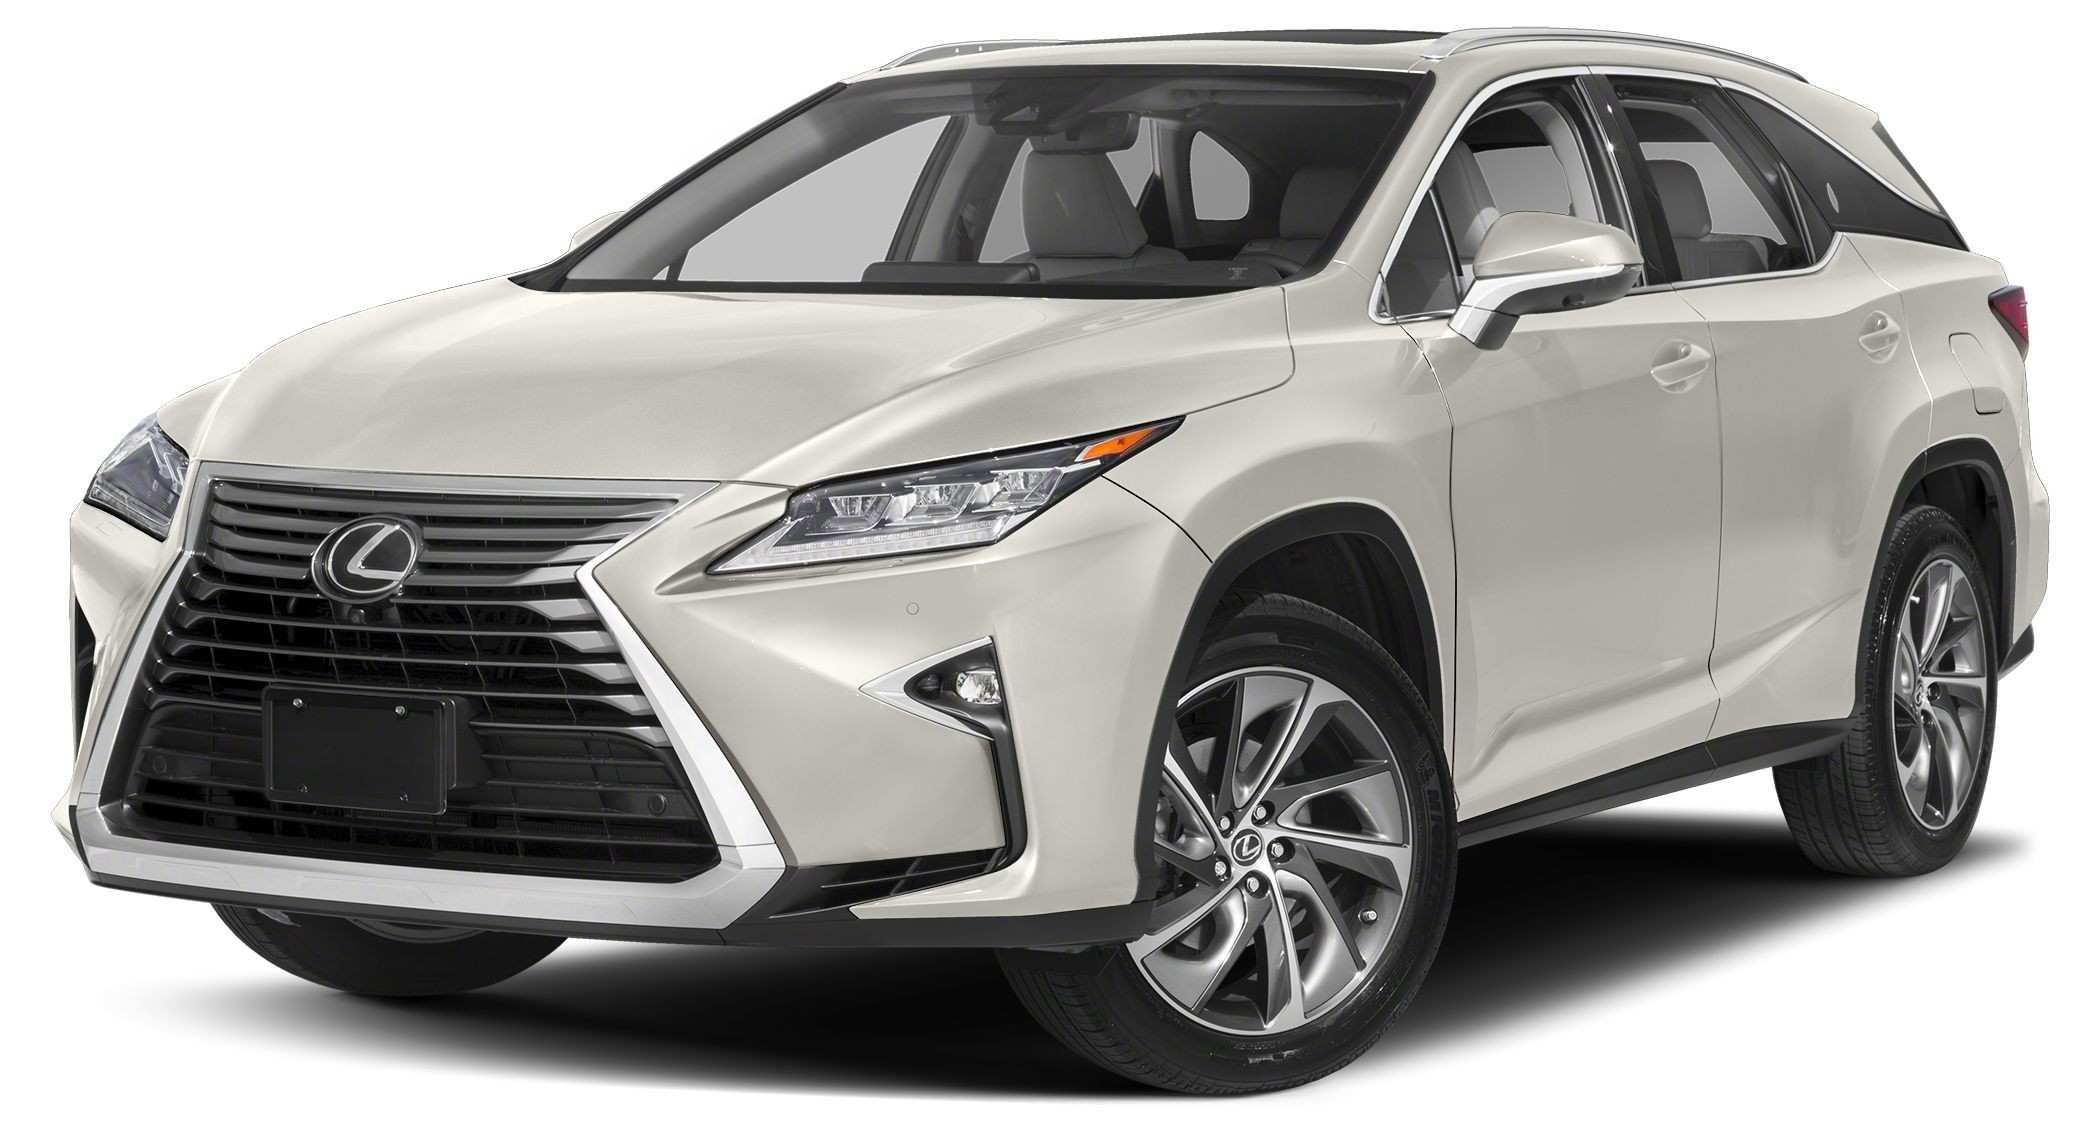 15 Best Review New Jeepeta Lexus 2019 Redesign Price And Review Picture by New Jeepeta Lexus 2019 Redesign Price And Review